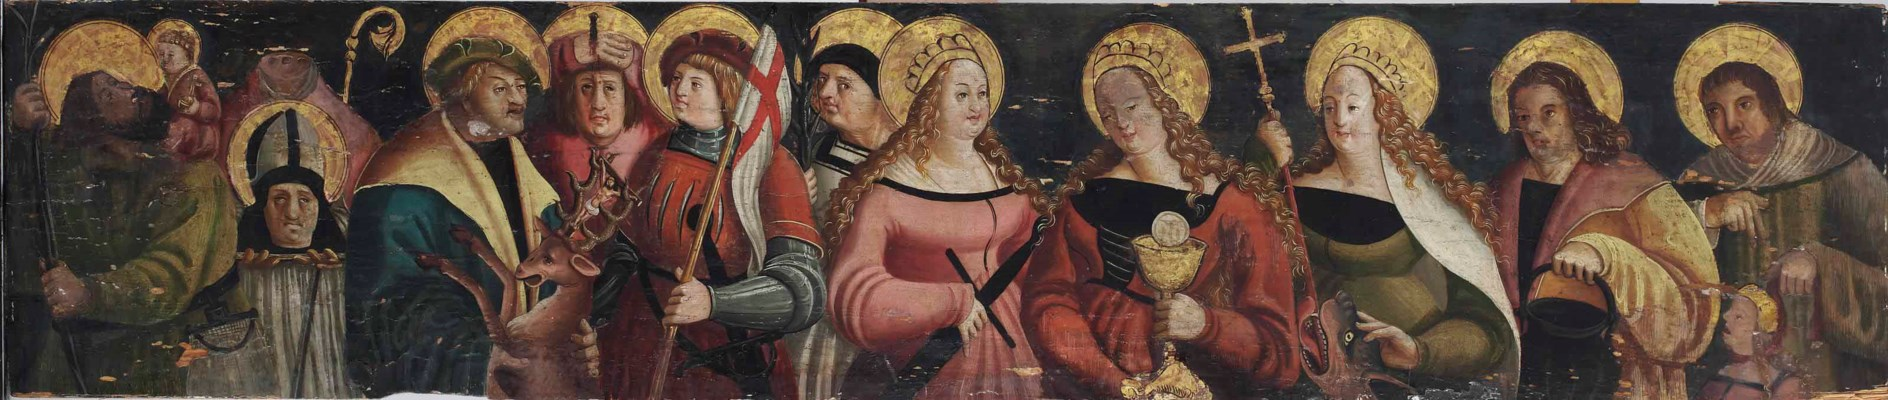 Master of Constance, c. 1510-1